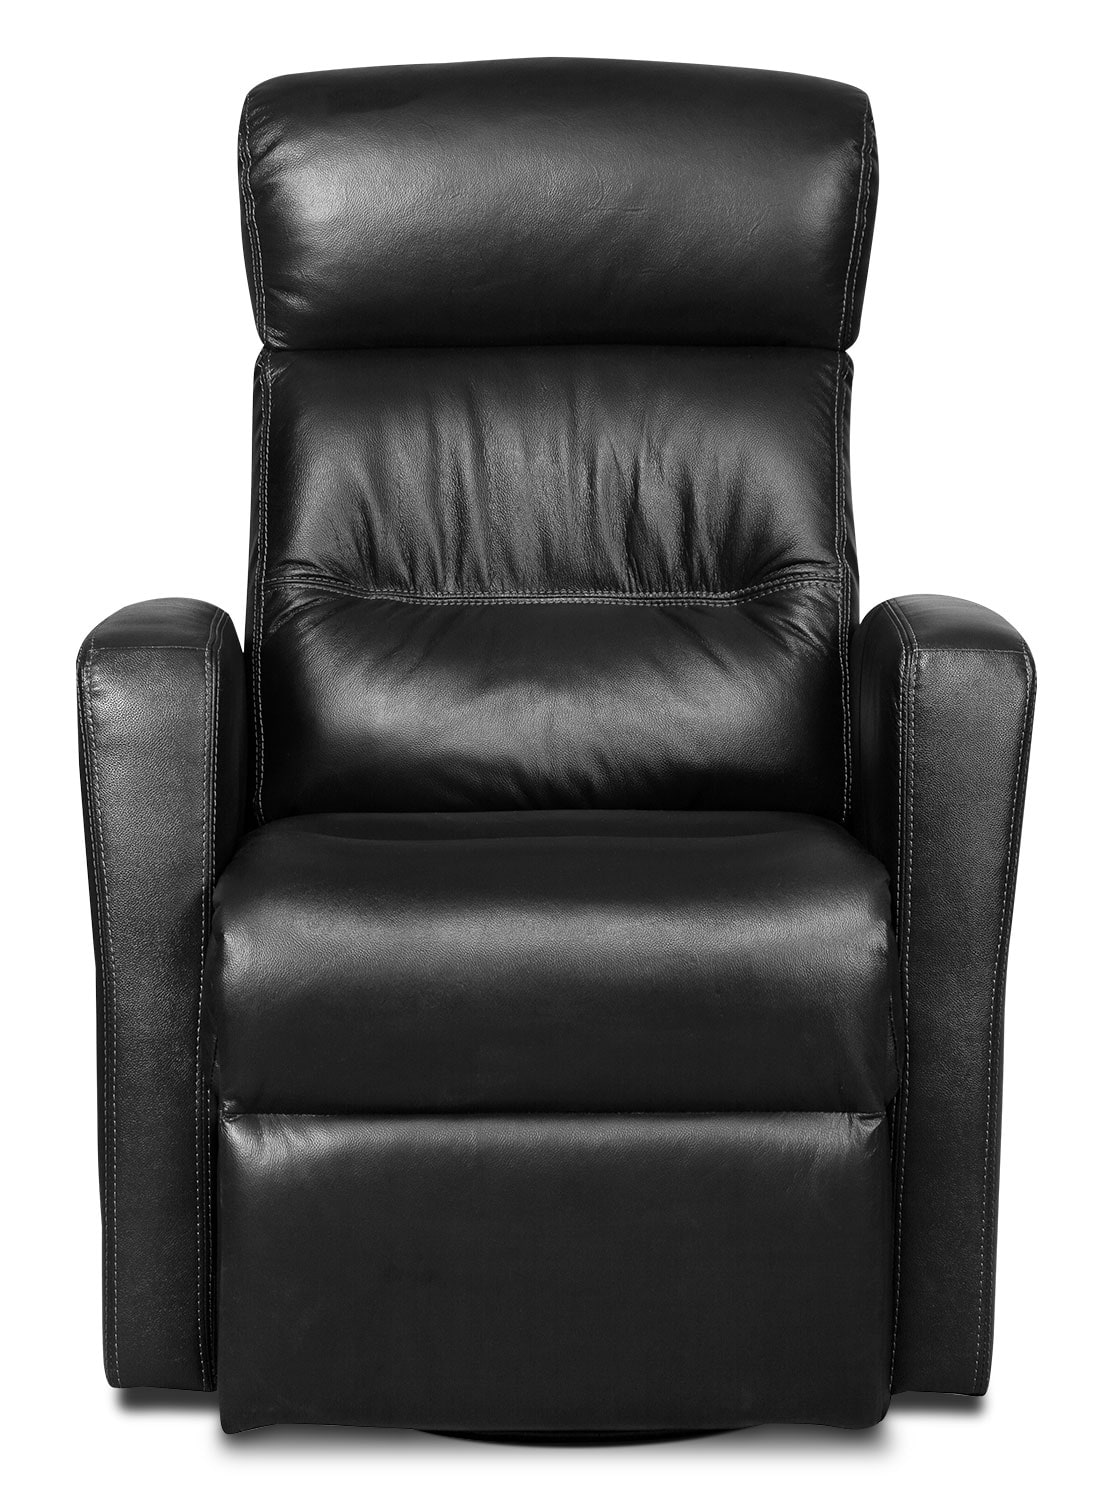 Penny Genuine Leather Swivel Rocker Reclining Chair Black United Furniture Warehouse